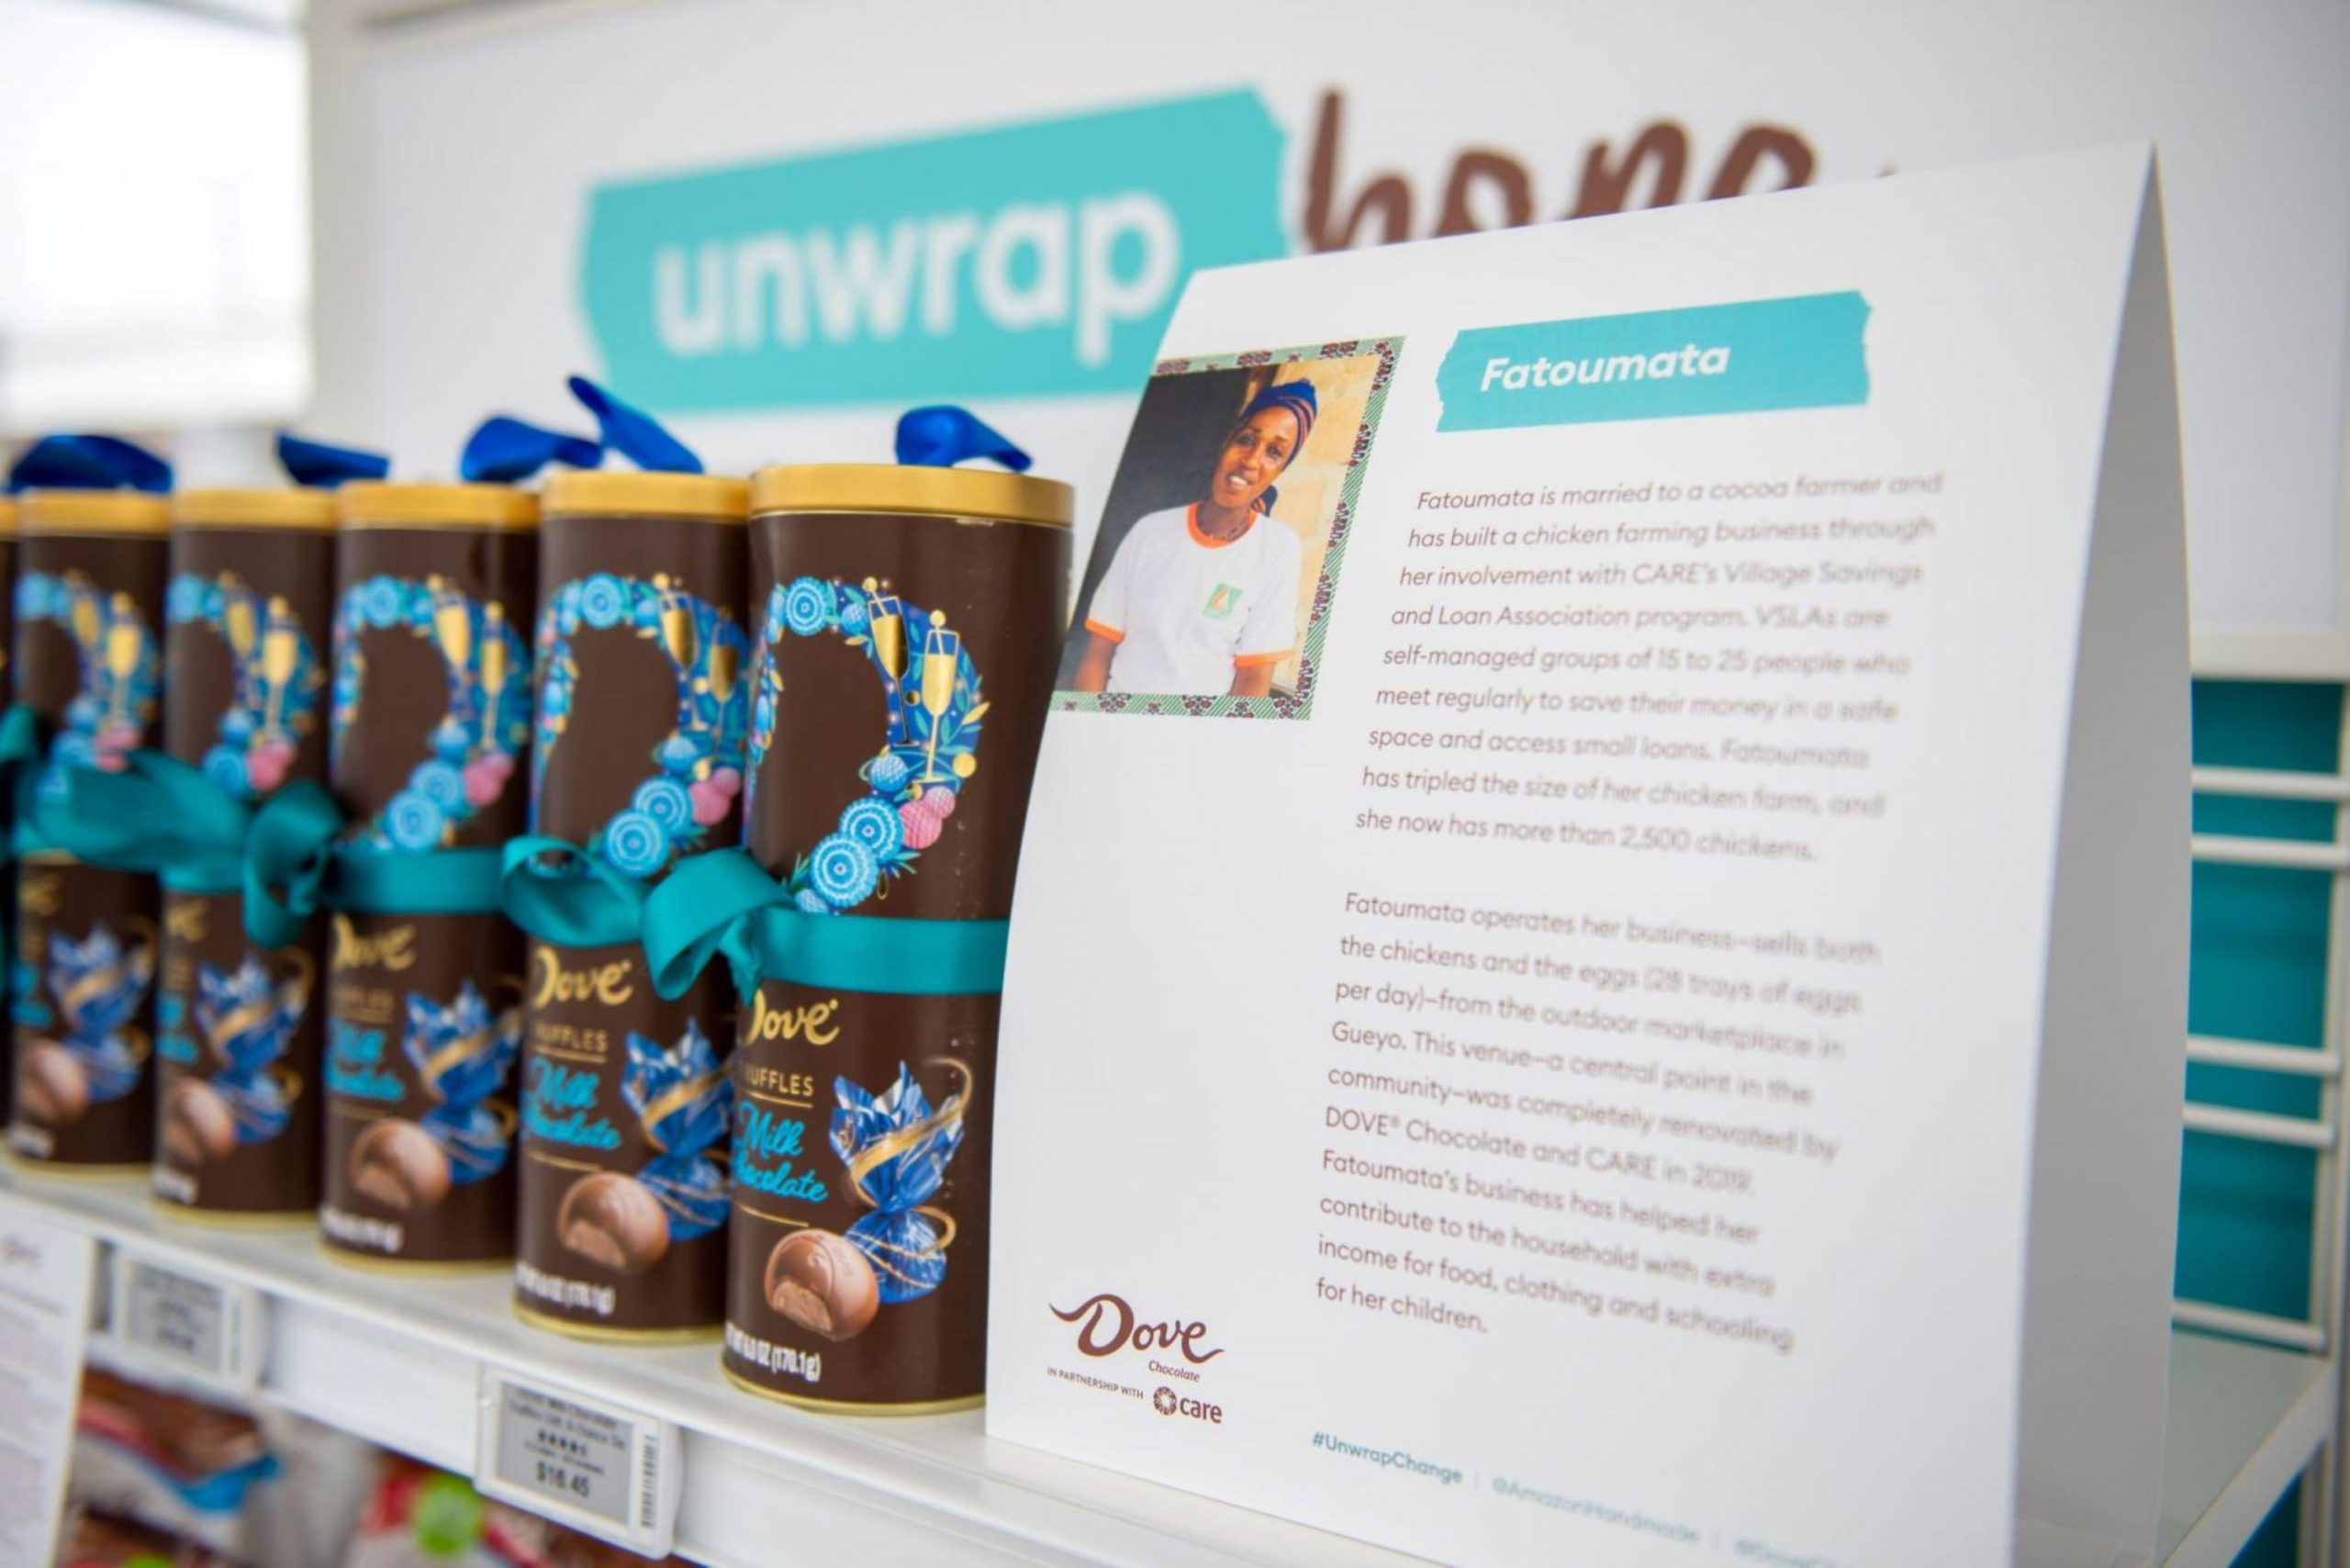 A product image of Dove Milk Chocolate Truffles next to a printed story of Fatoumata, a woman involved with CARE's Village Savings and Loan Associations program.